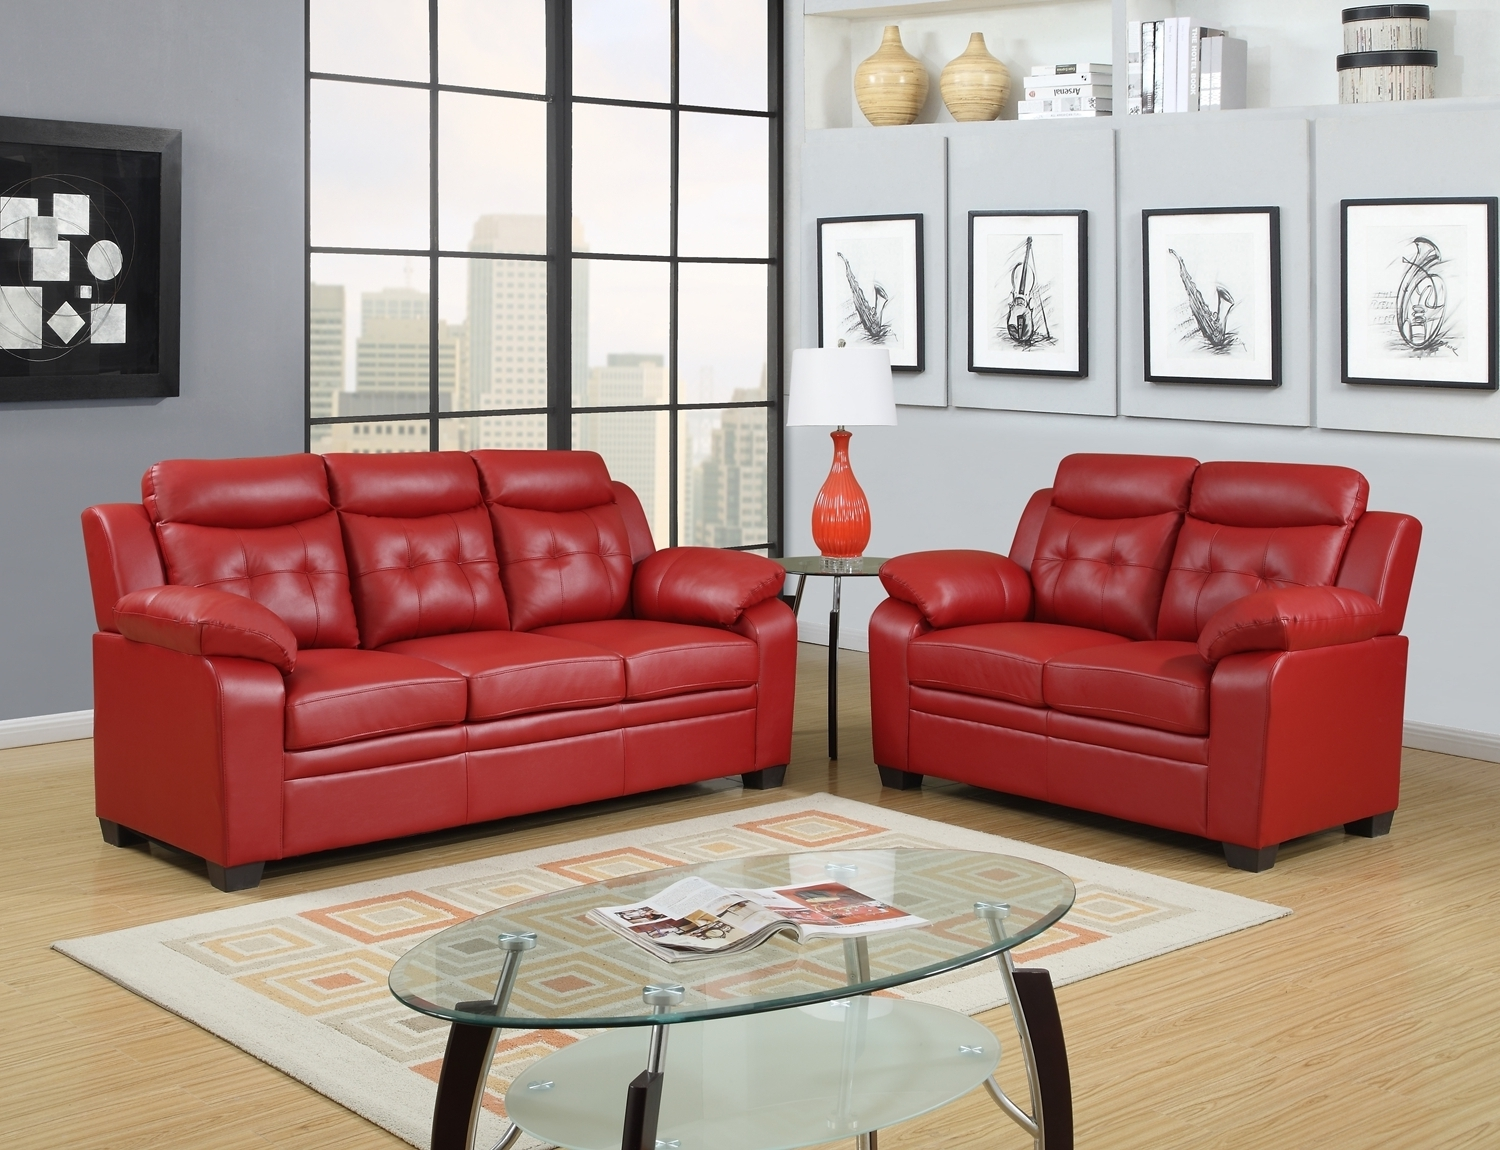 Newest Lovely Cheap Red Leather Sofa 11 In With Cheap Red Leather Sofa In Red Leather Couches (View 6 of 20)